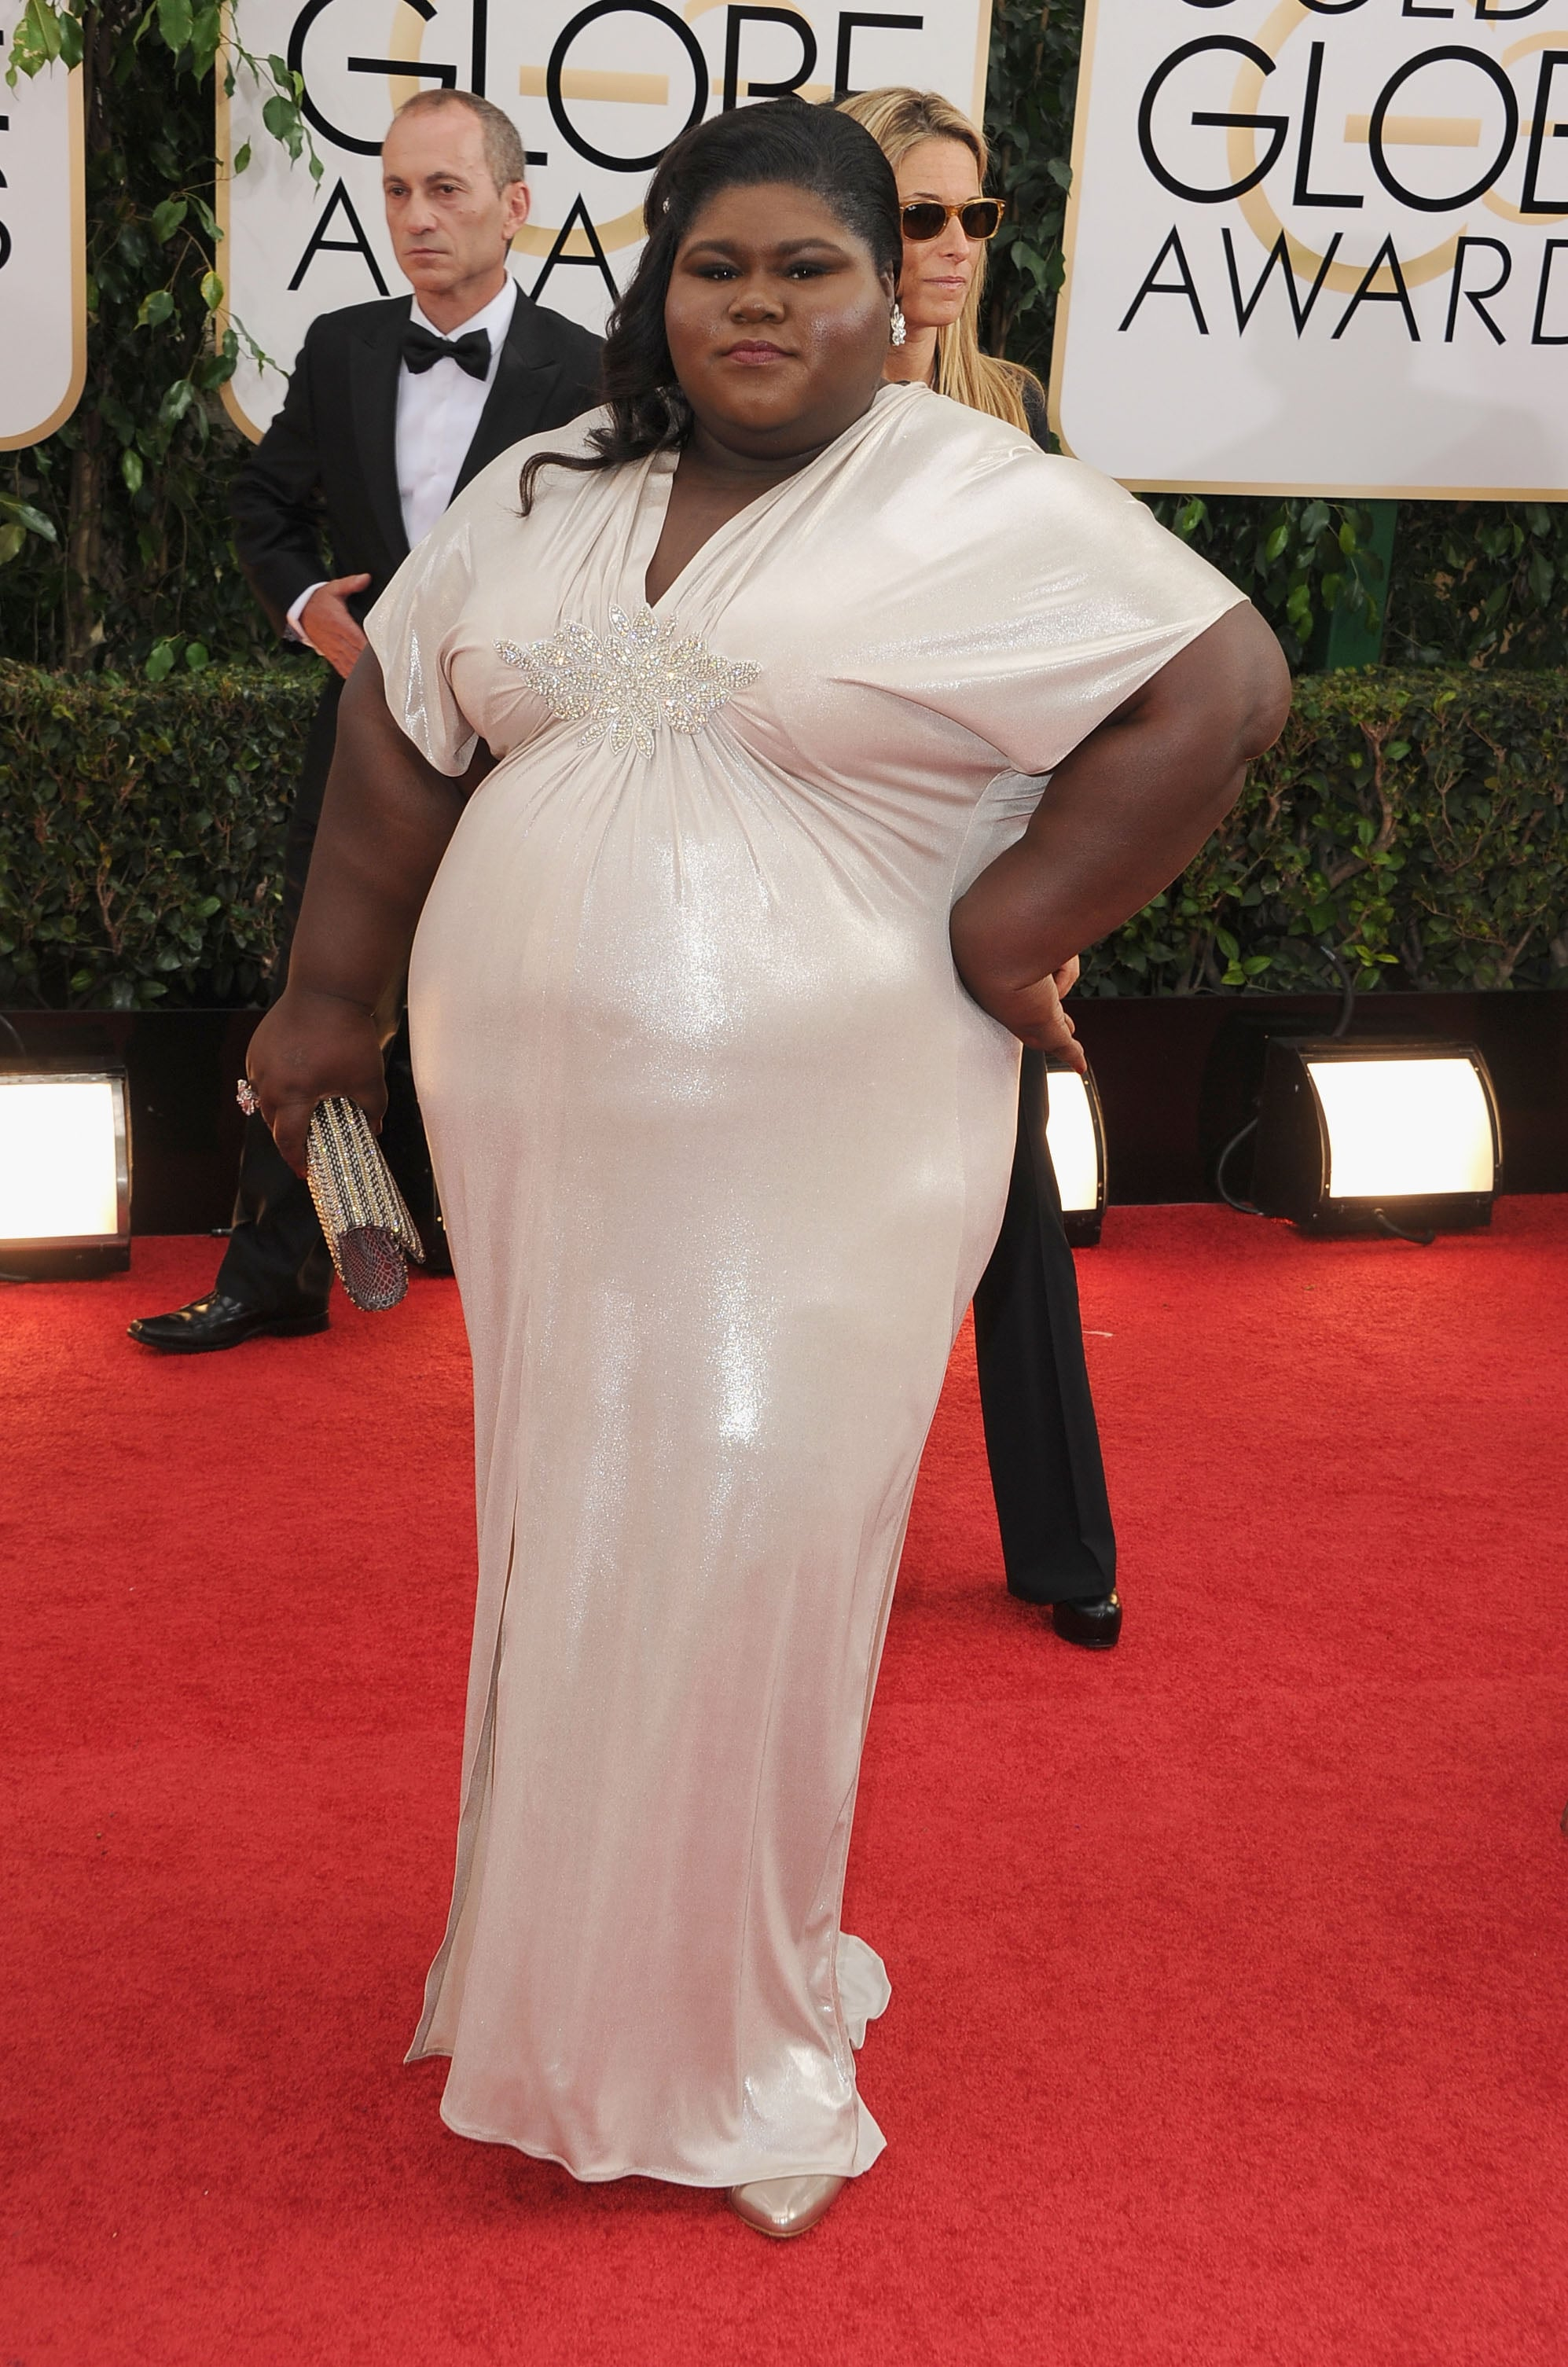 Gabourey Sidibe shined on the red carpet.